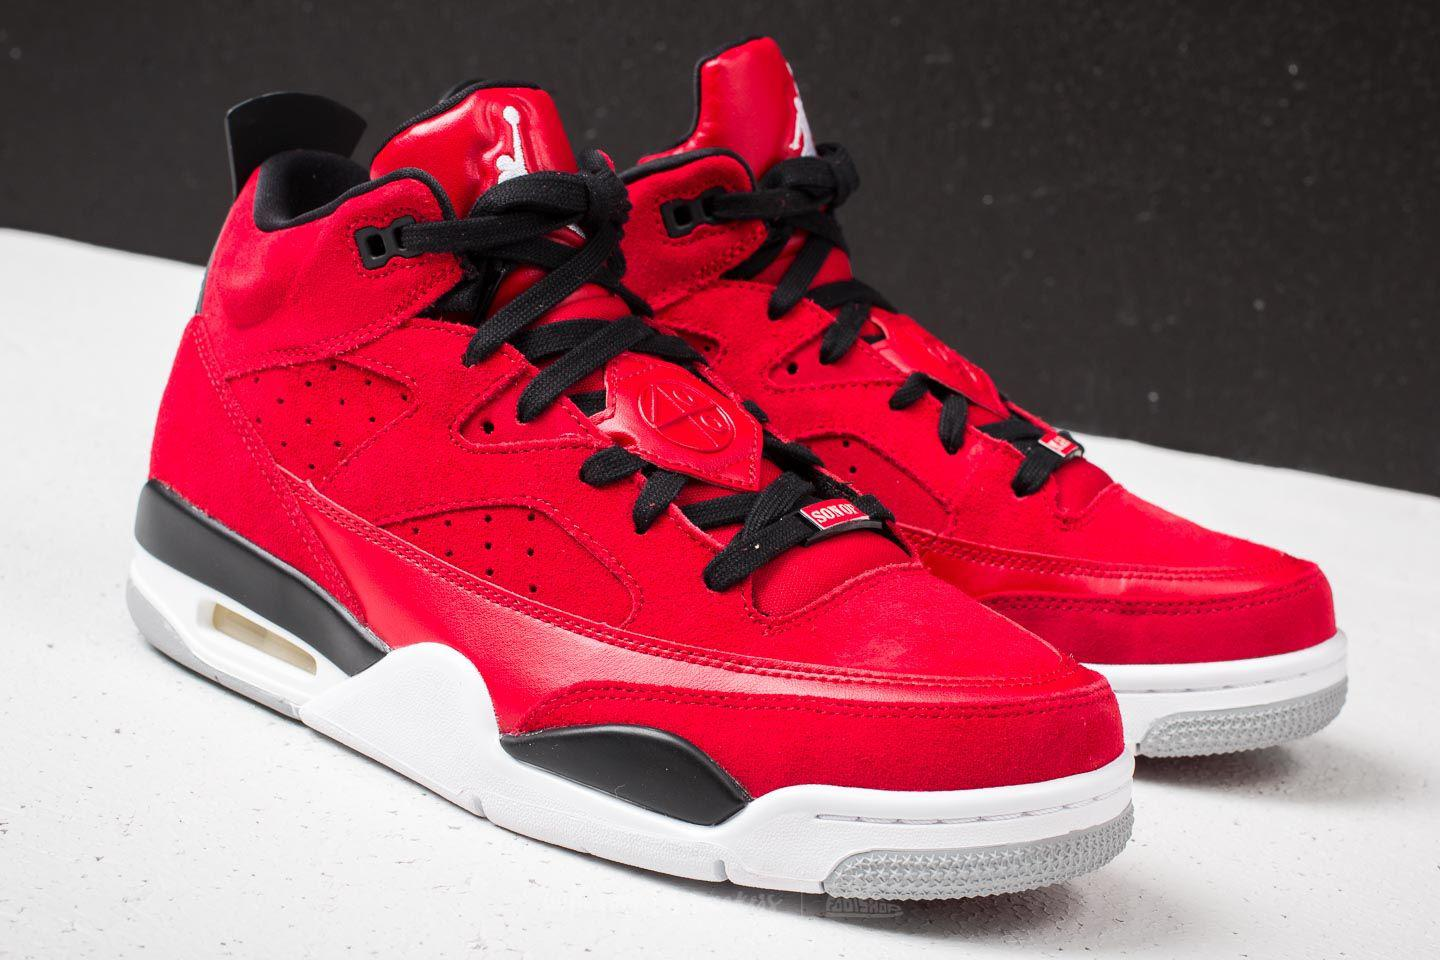 pretty nice e8b88 1b5f0 Lyst - Nike Son Of Low Gym Red  White-black-wolf Grey in Red for Men